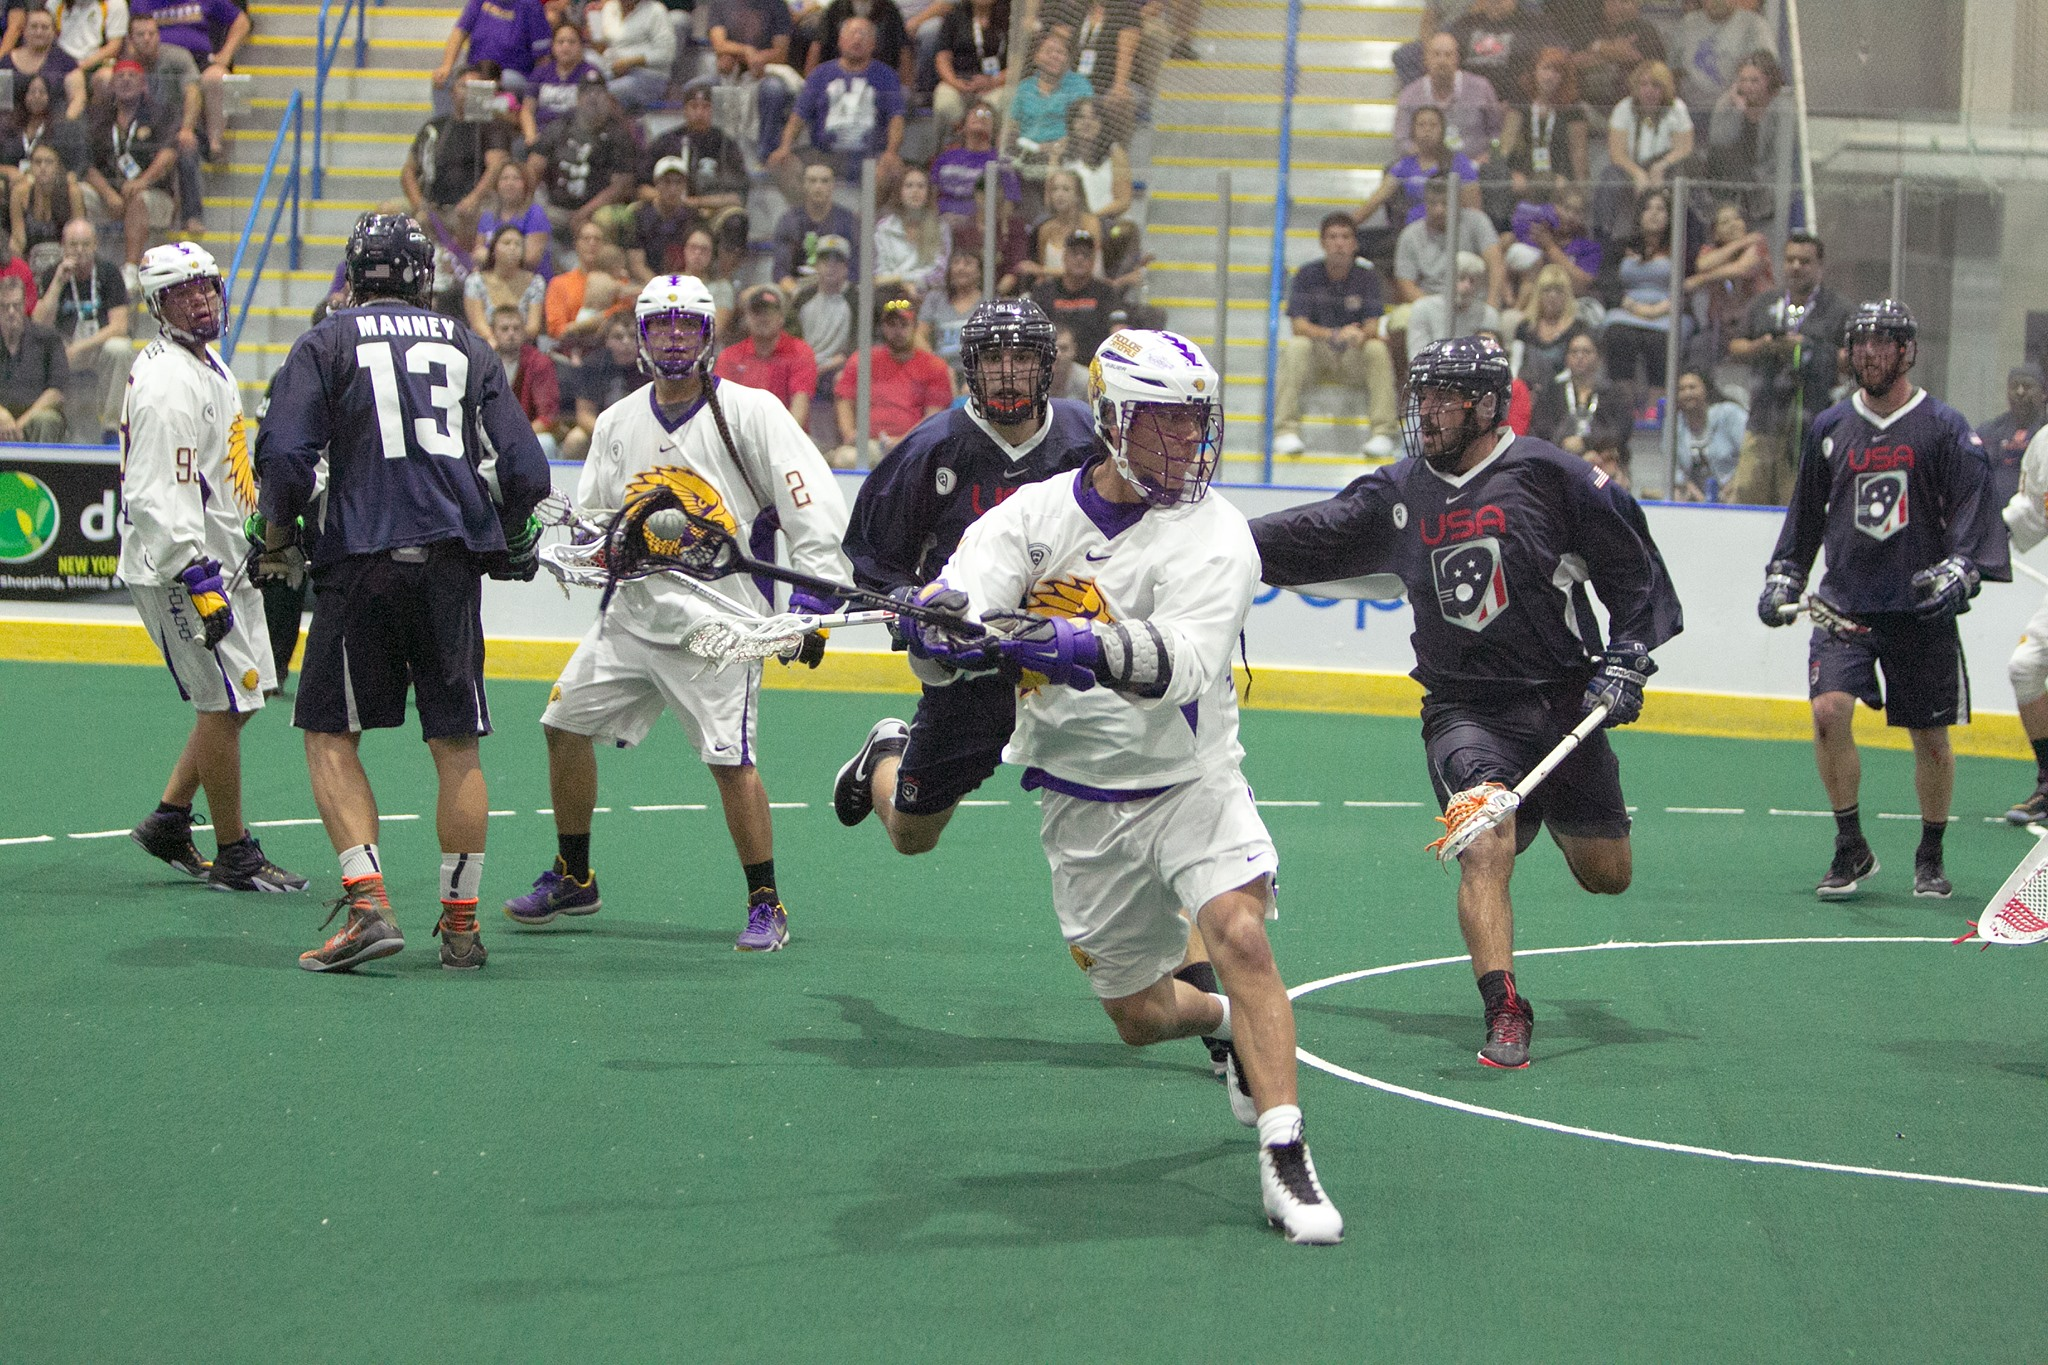 Lacrosse documentary 'Pride of a Nation' opens to strong reviews